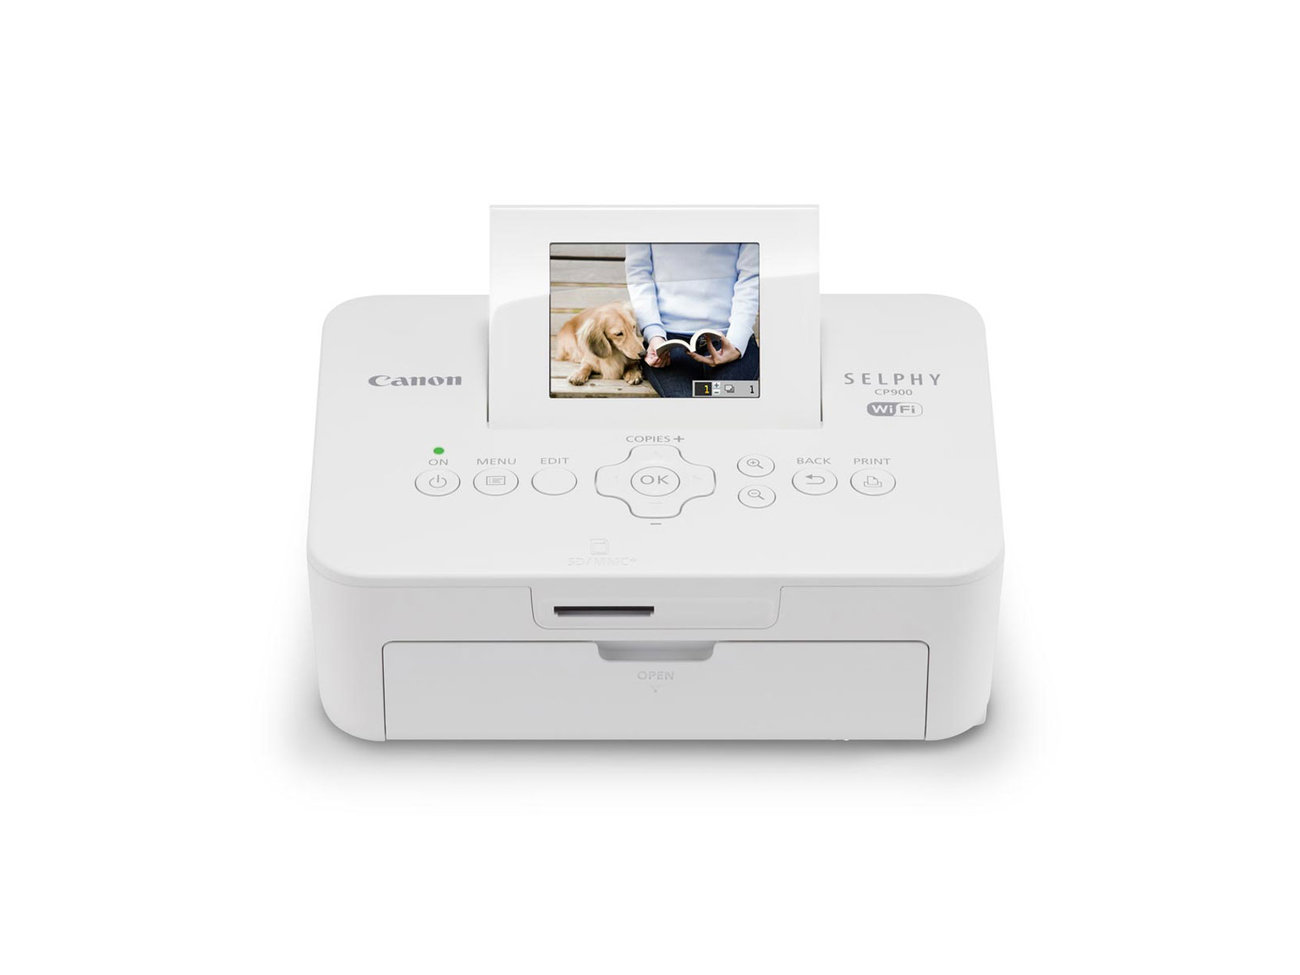 Tech-portable-printer-GG1115.jpg